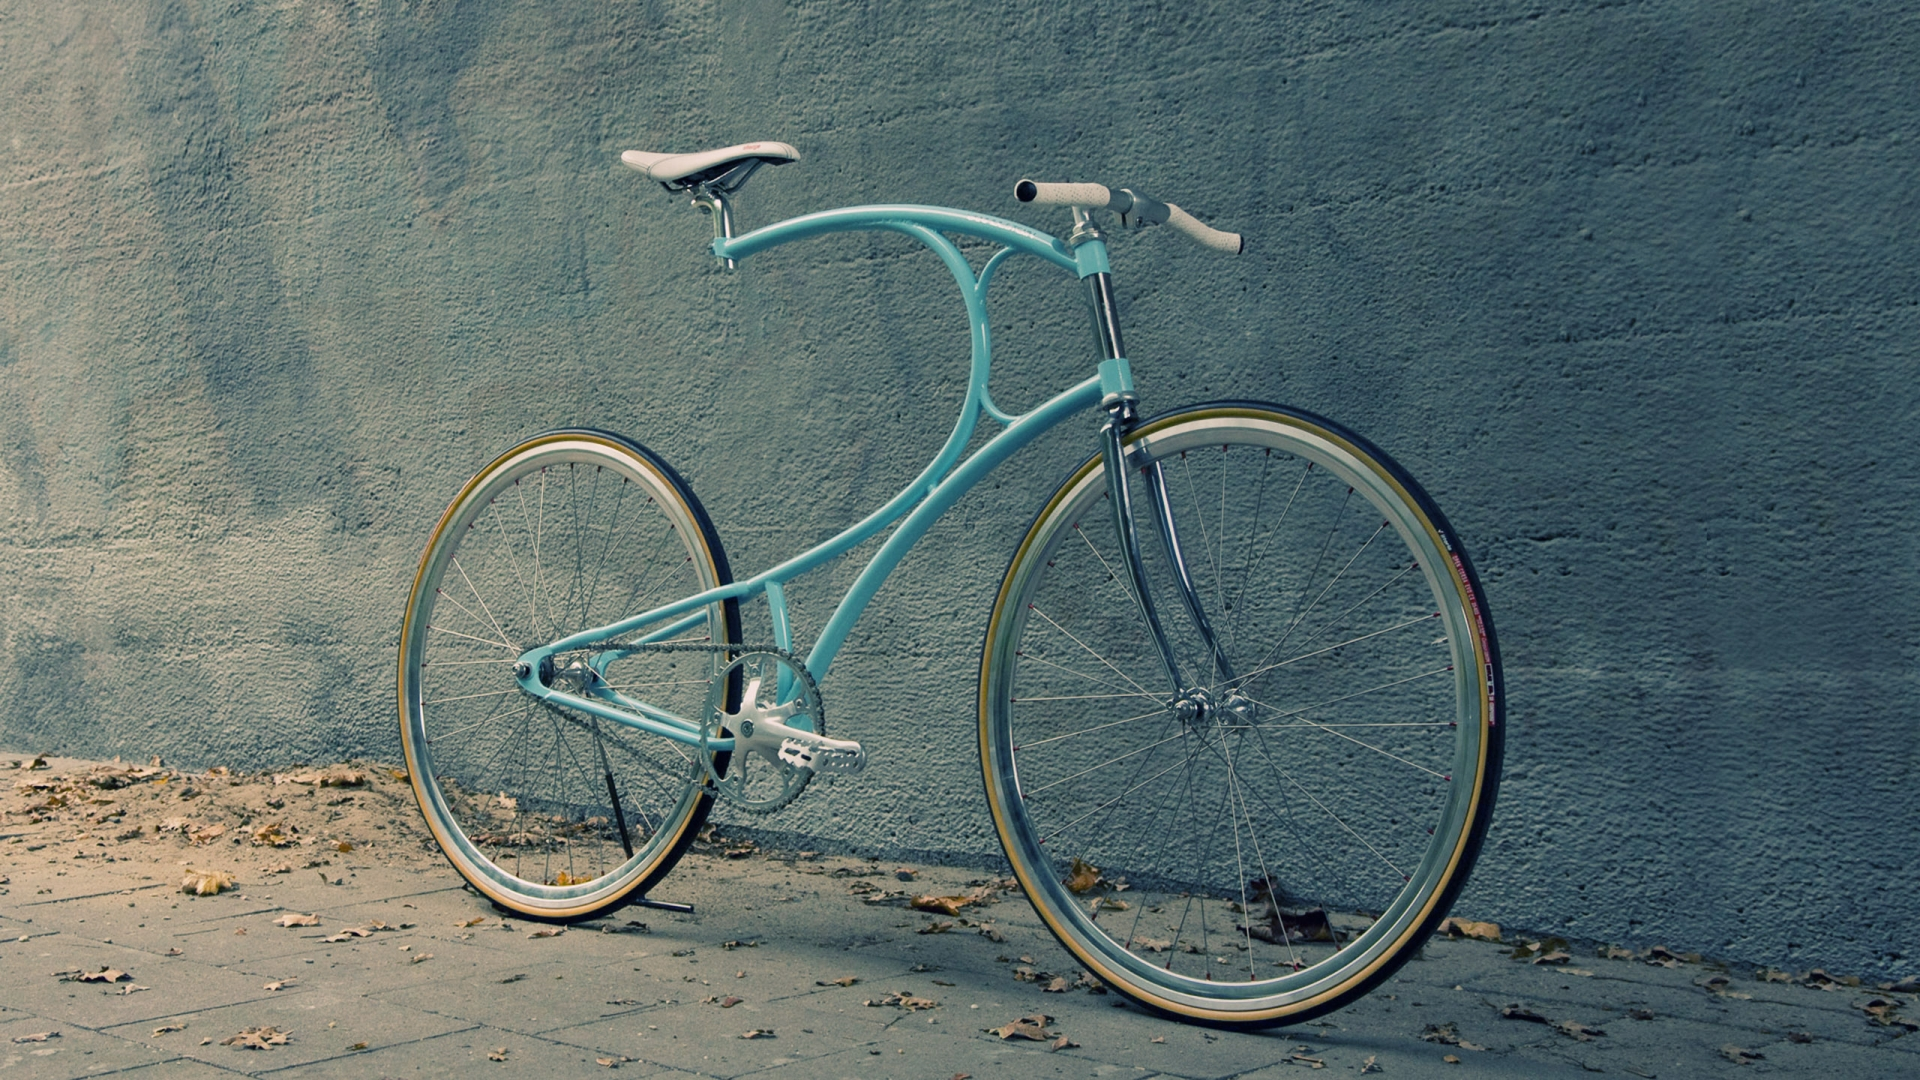 Bicycle retro wallpaper | 1920x1080 | 31319 | WallpaperUP